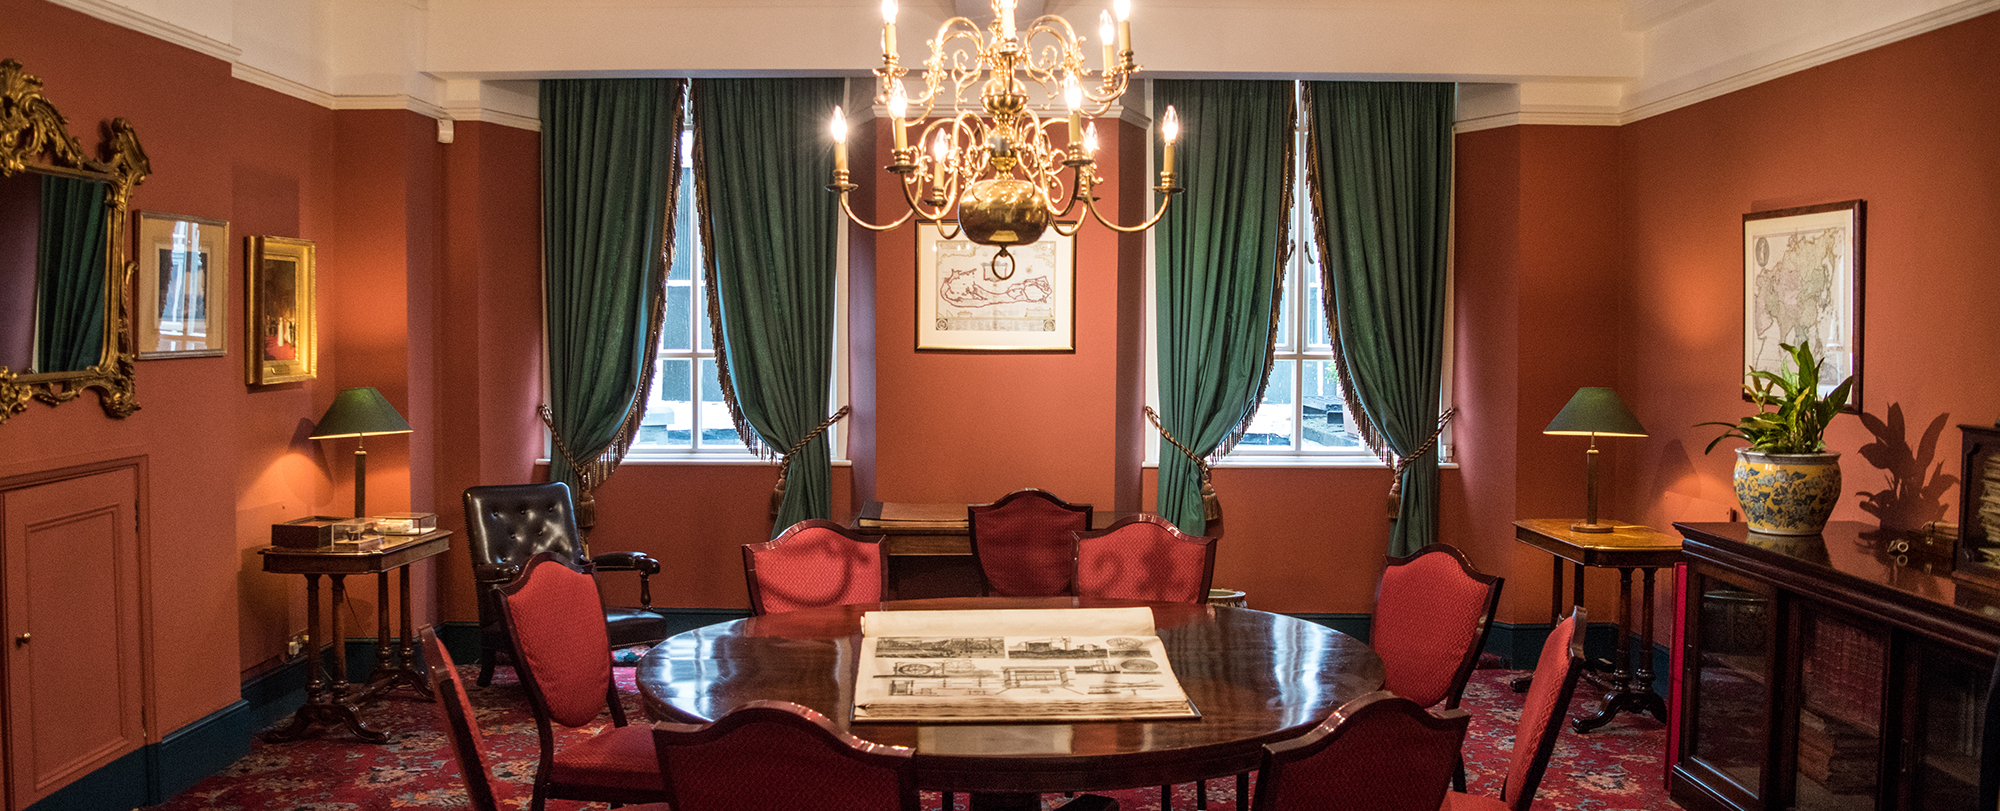 106 Pall Mall small meeting and private dining room